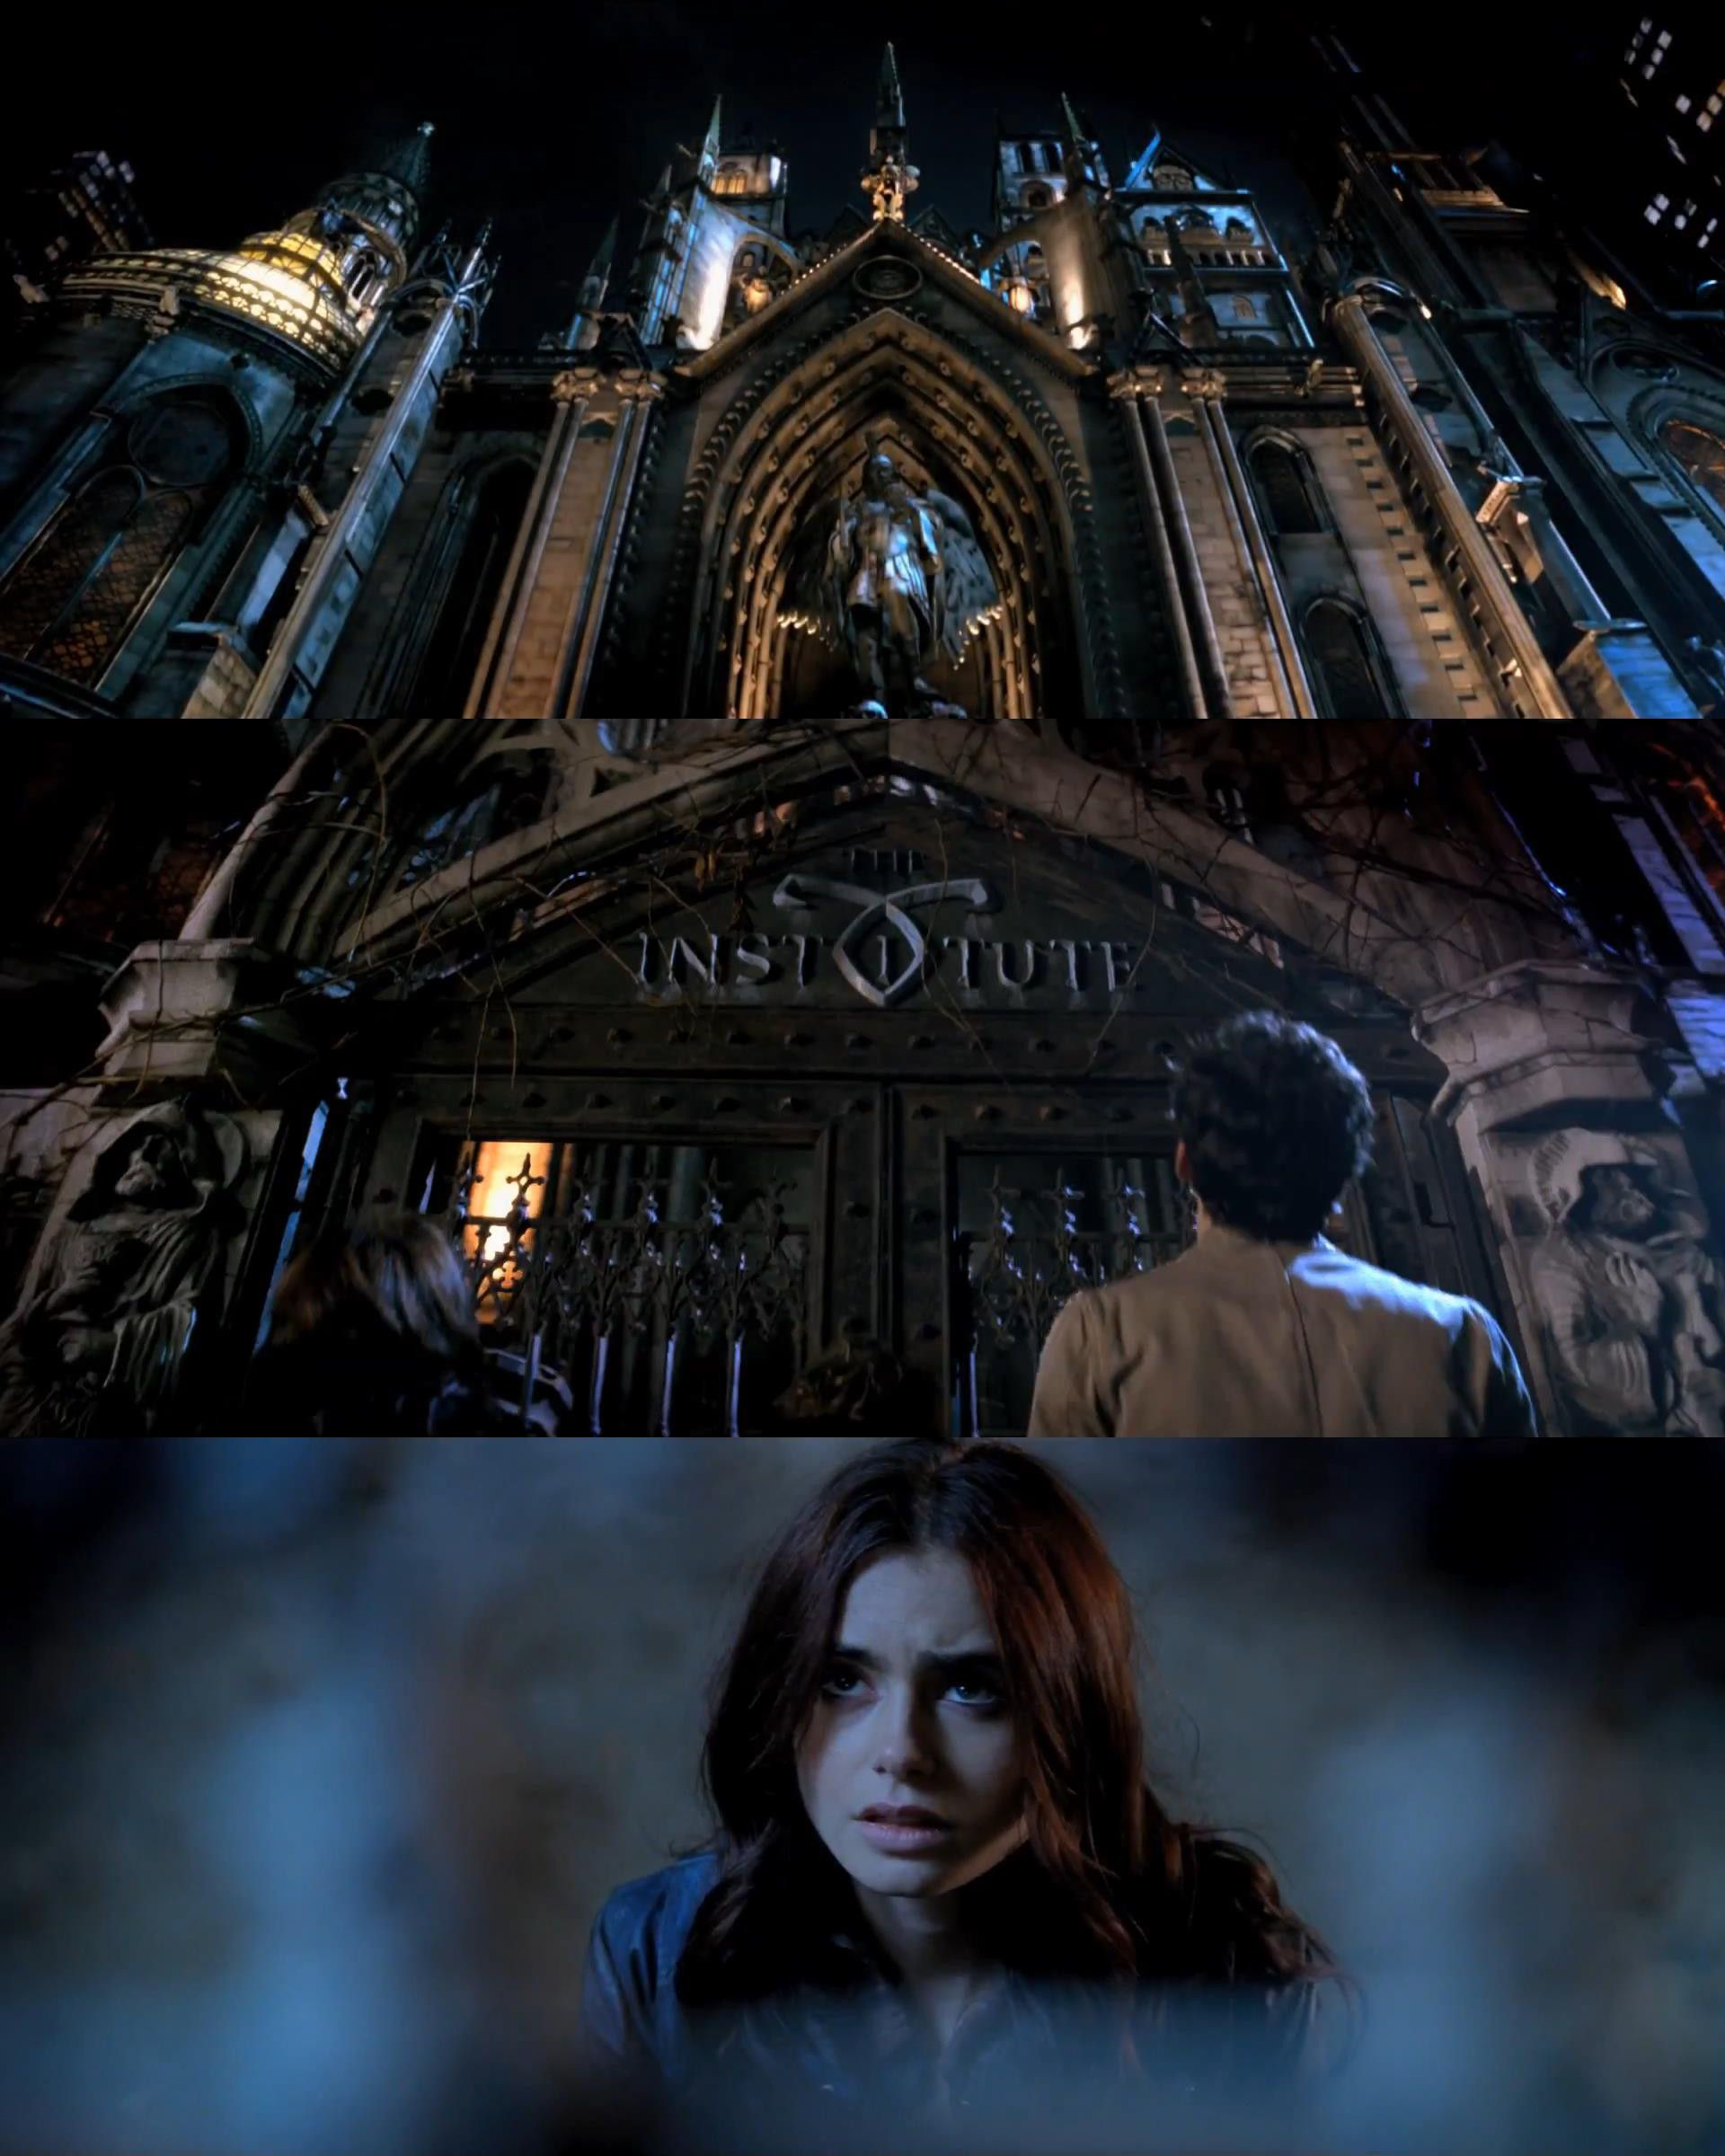 Pin By Lena Elika On The Mortal Instruments City Of Bones To The Bone Movie The Mortal Instruments